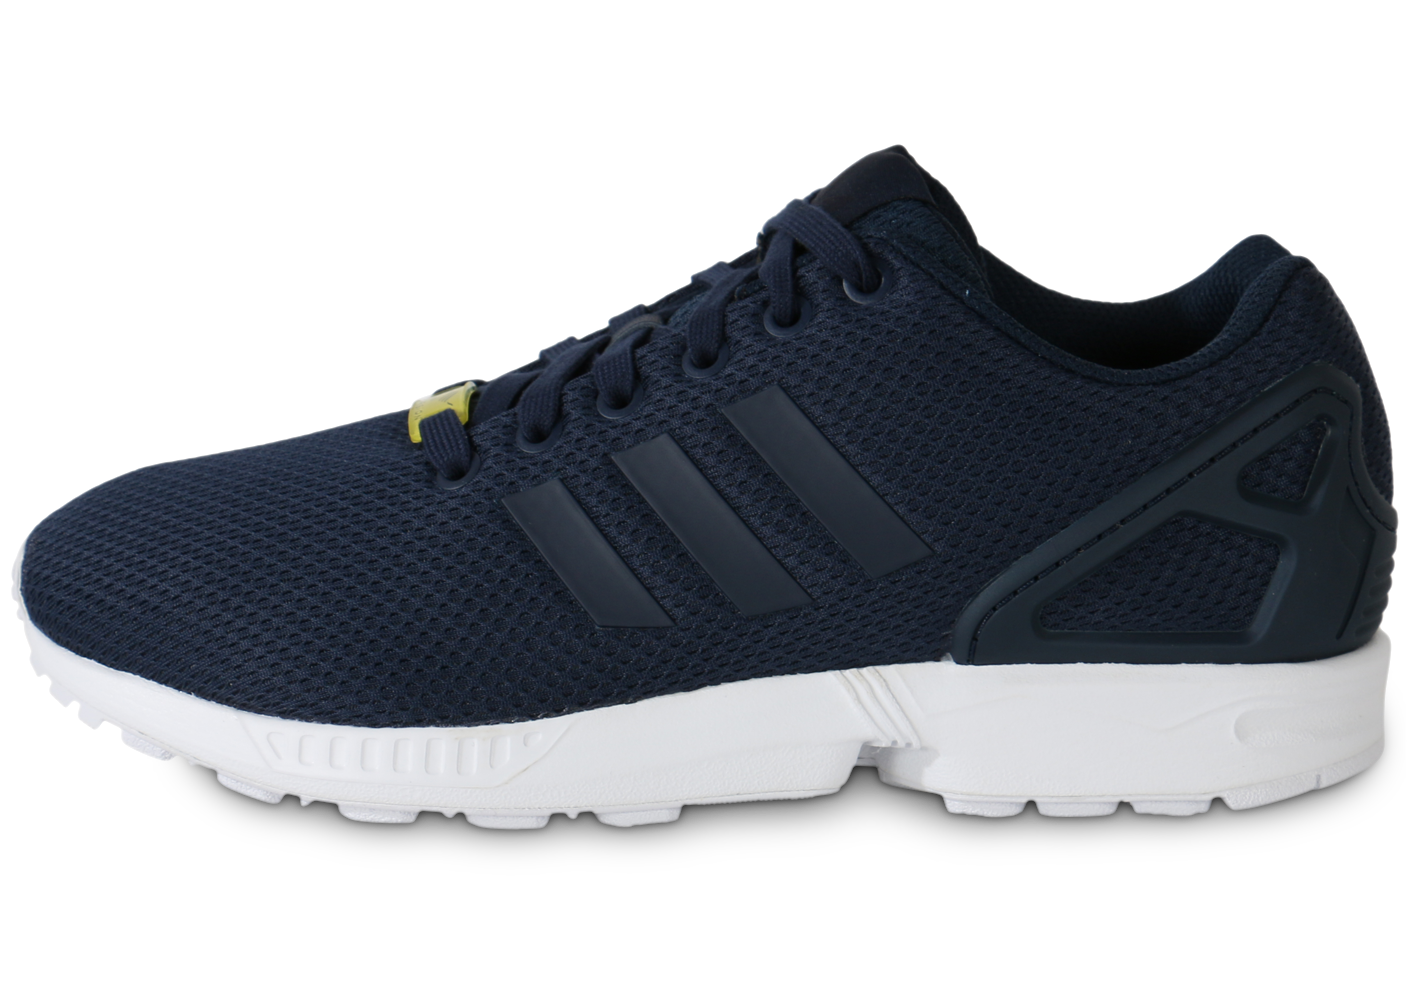 the best attitude 53371 3b2e7 Adidas homme zx flux mesh bleu marine baskets